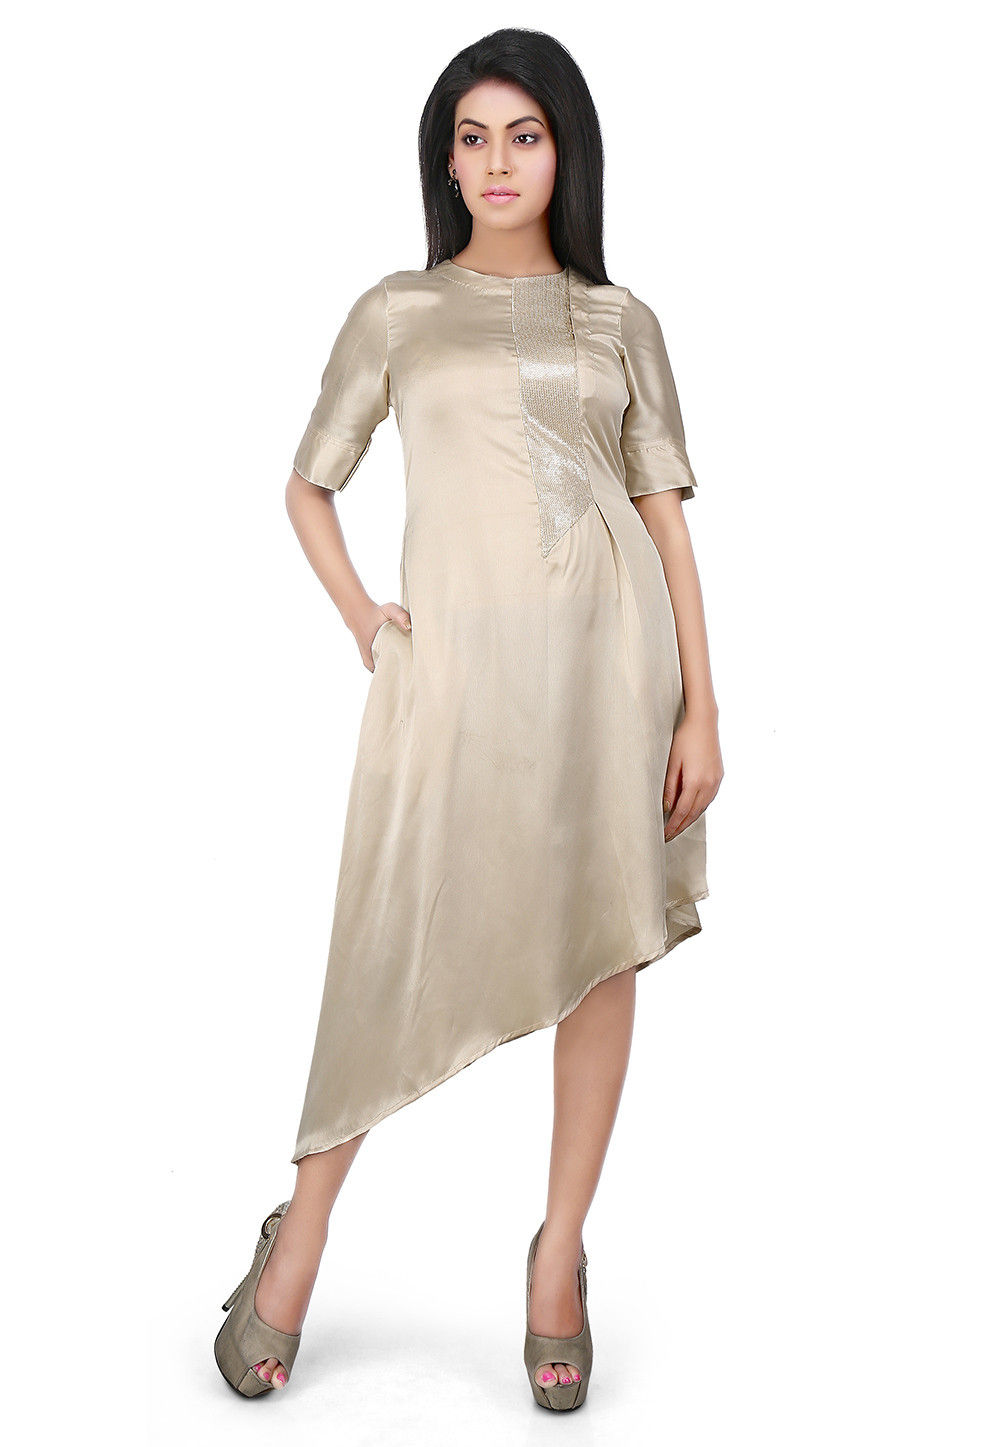 Embellished Side Placket Satin Asymmetric Dress in Beige